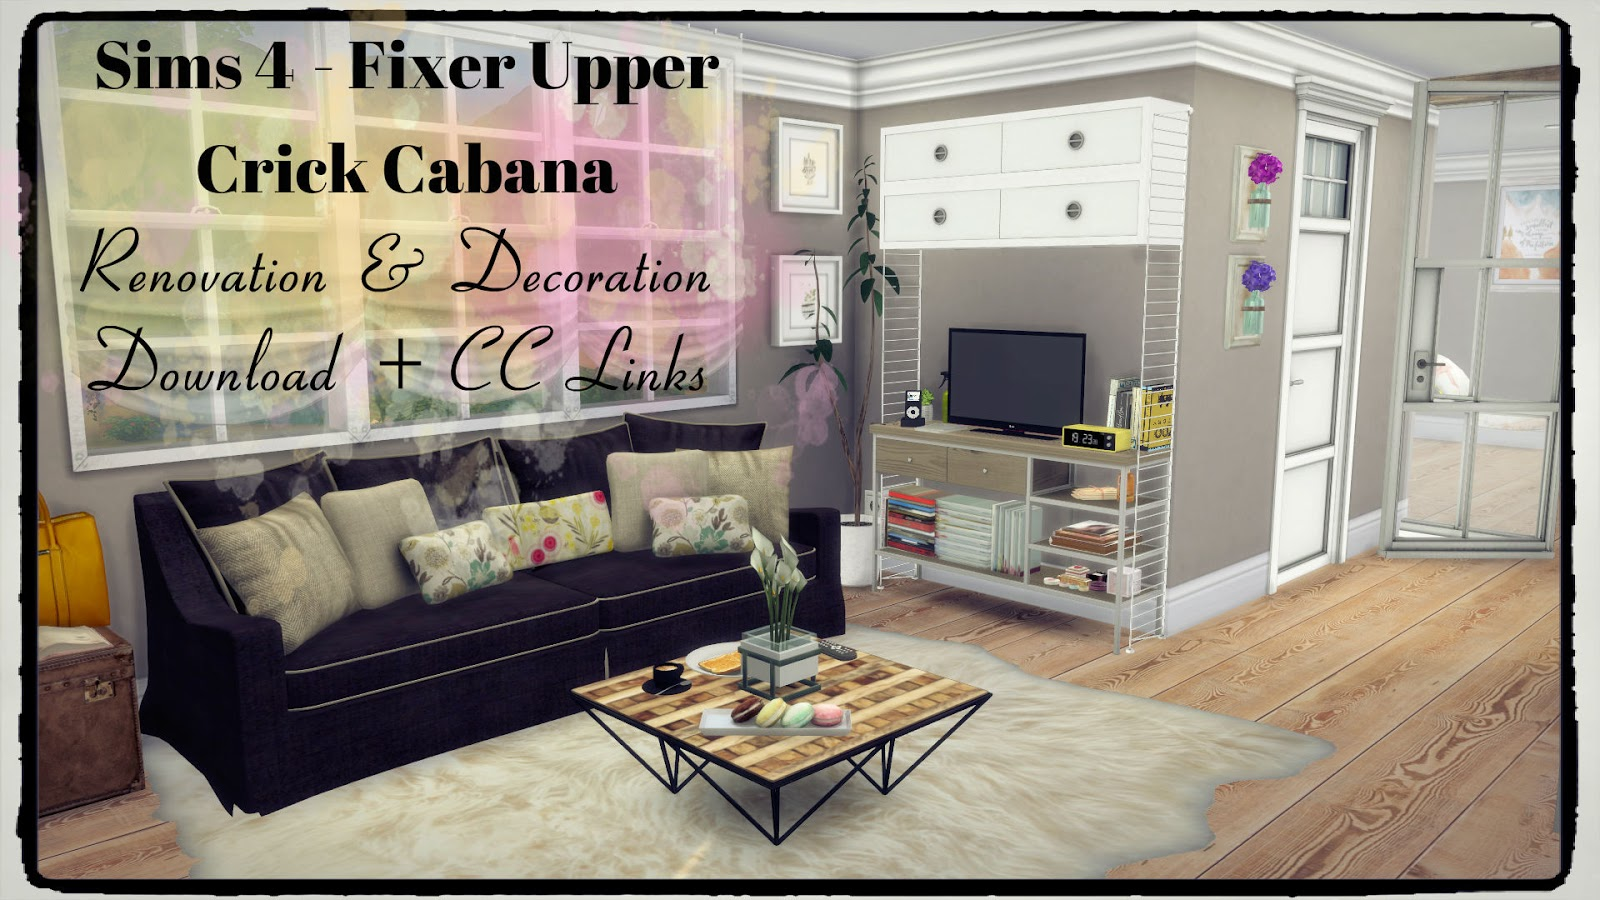 Sims 4 fixer upper crick cabana renovation decoration Download home decoration pics